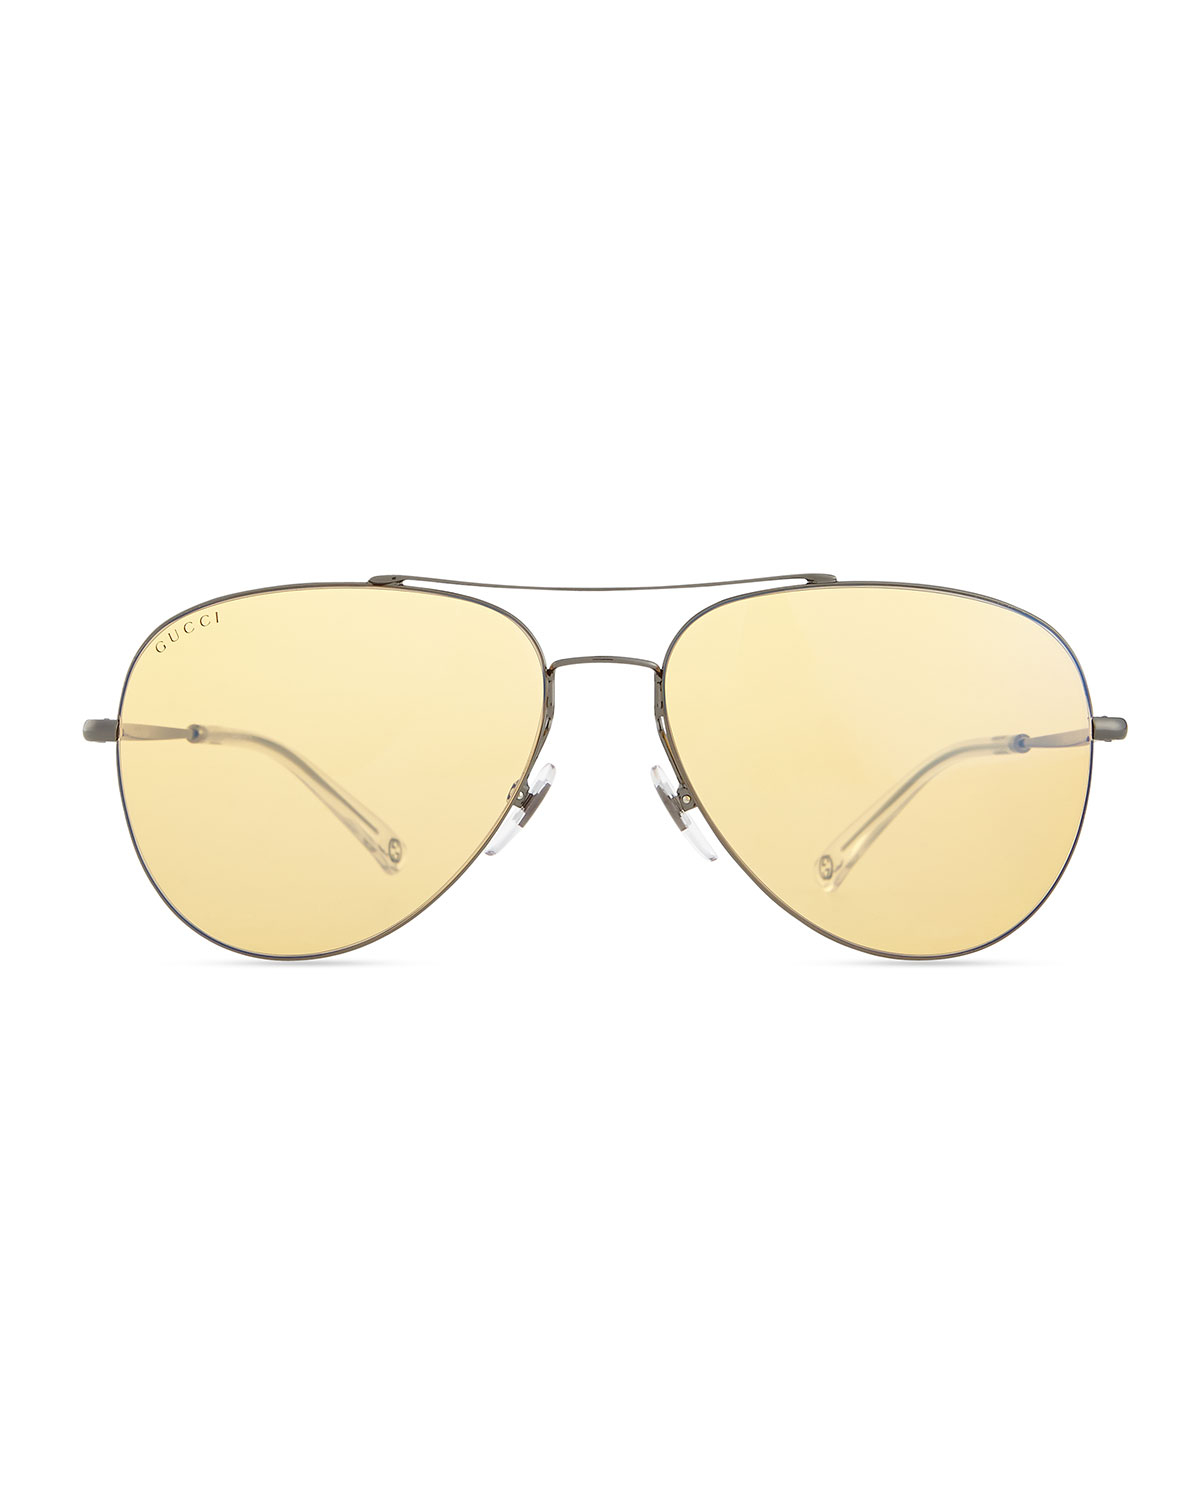 01bf14cee Gucci Flash-Lens Aviator Sunglasses in Yellow - Lyst